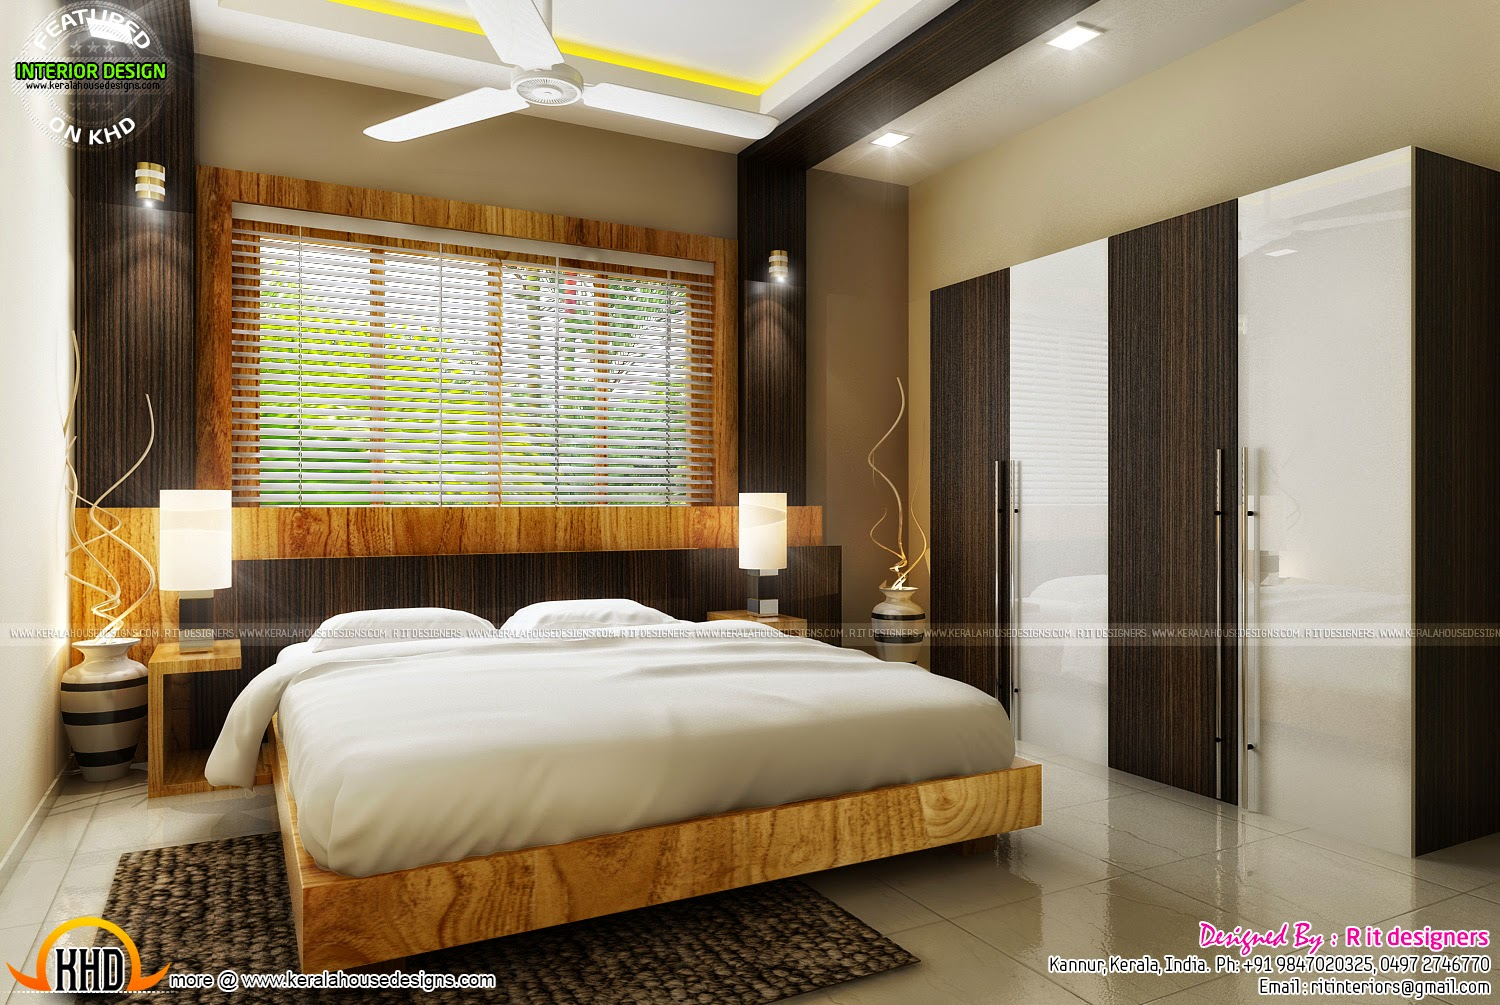 Home wallpaper cost india wallpaper home for Interior wallpaper designs india